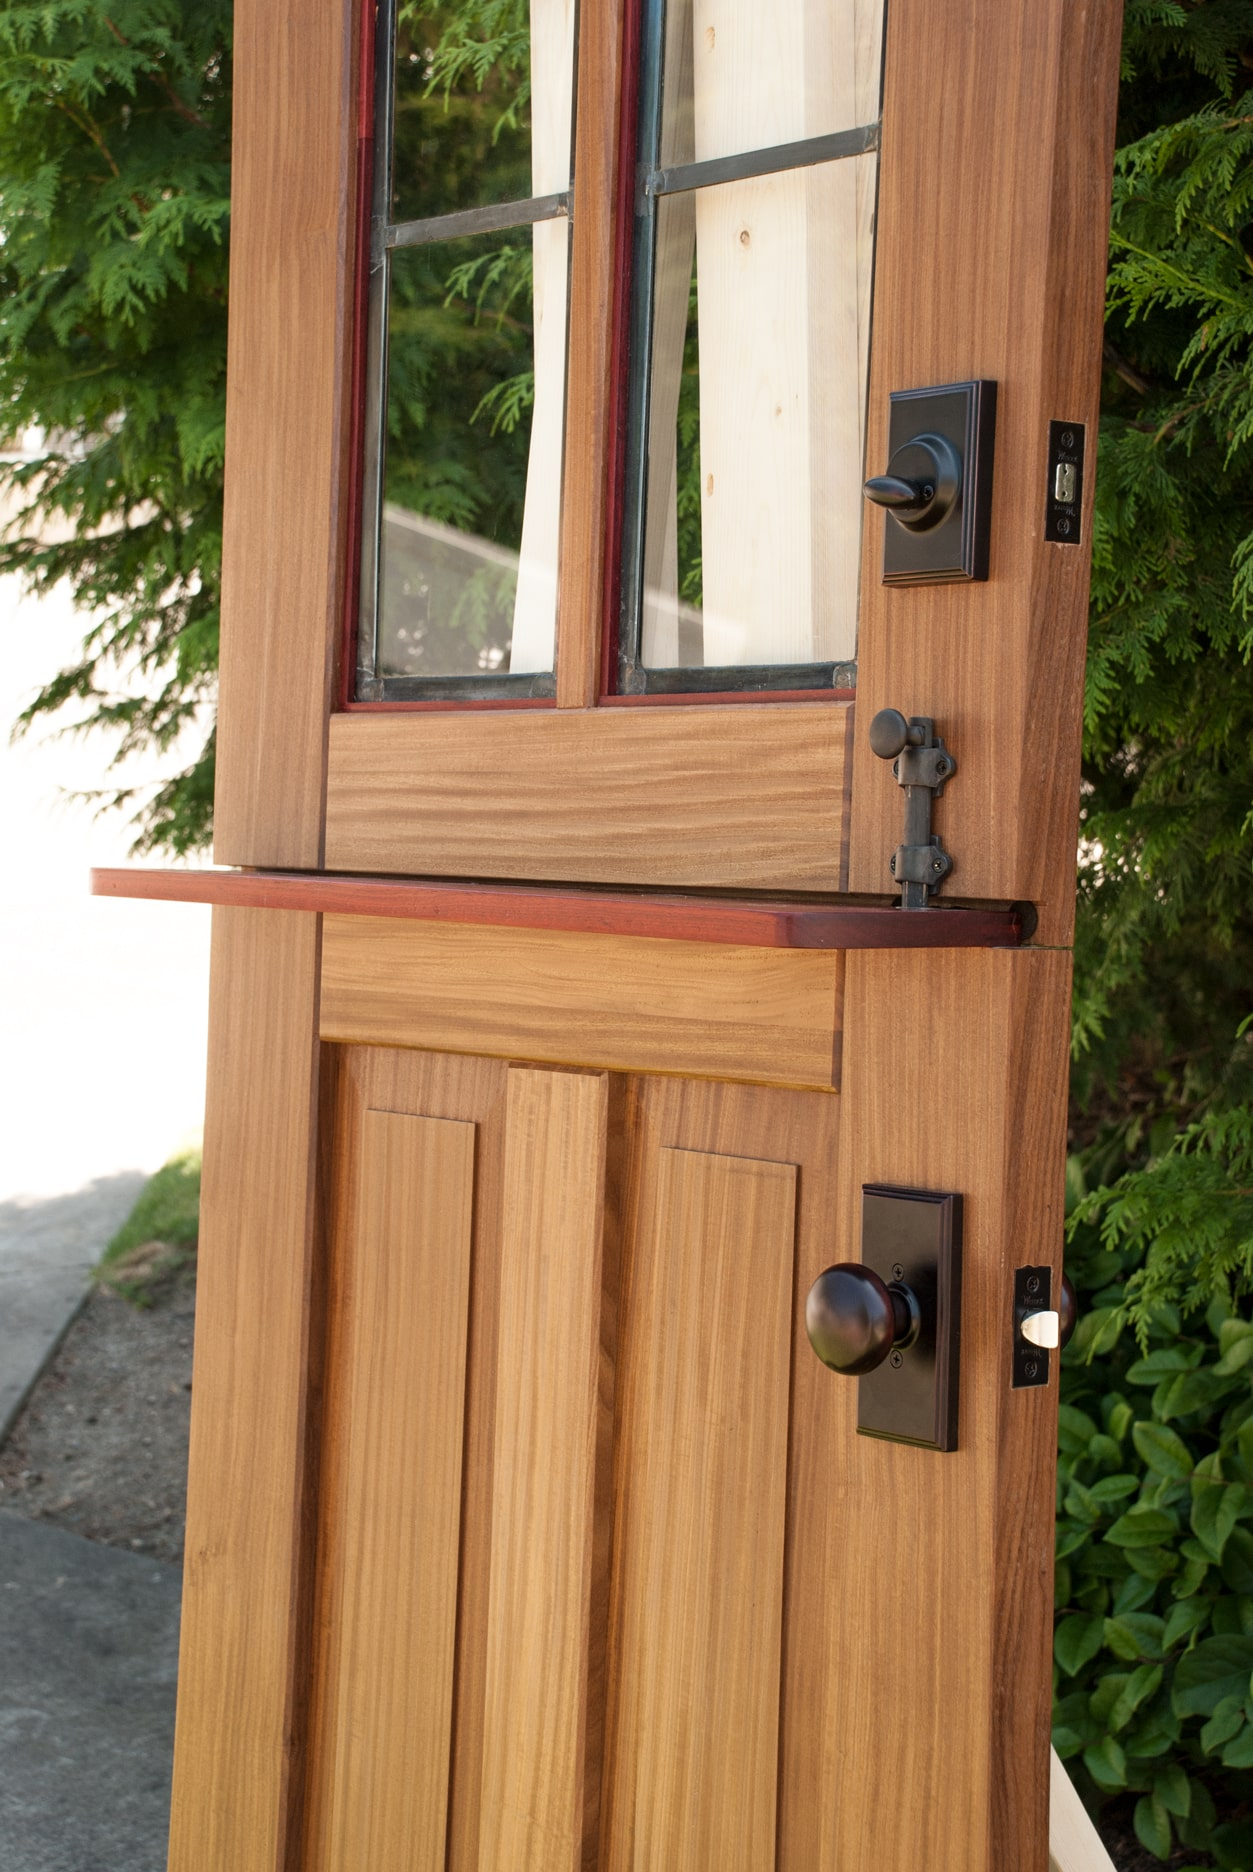 33. Dutch Door Before Installation